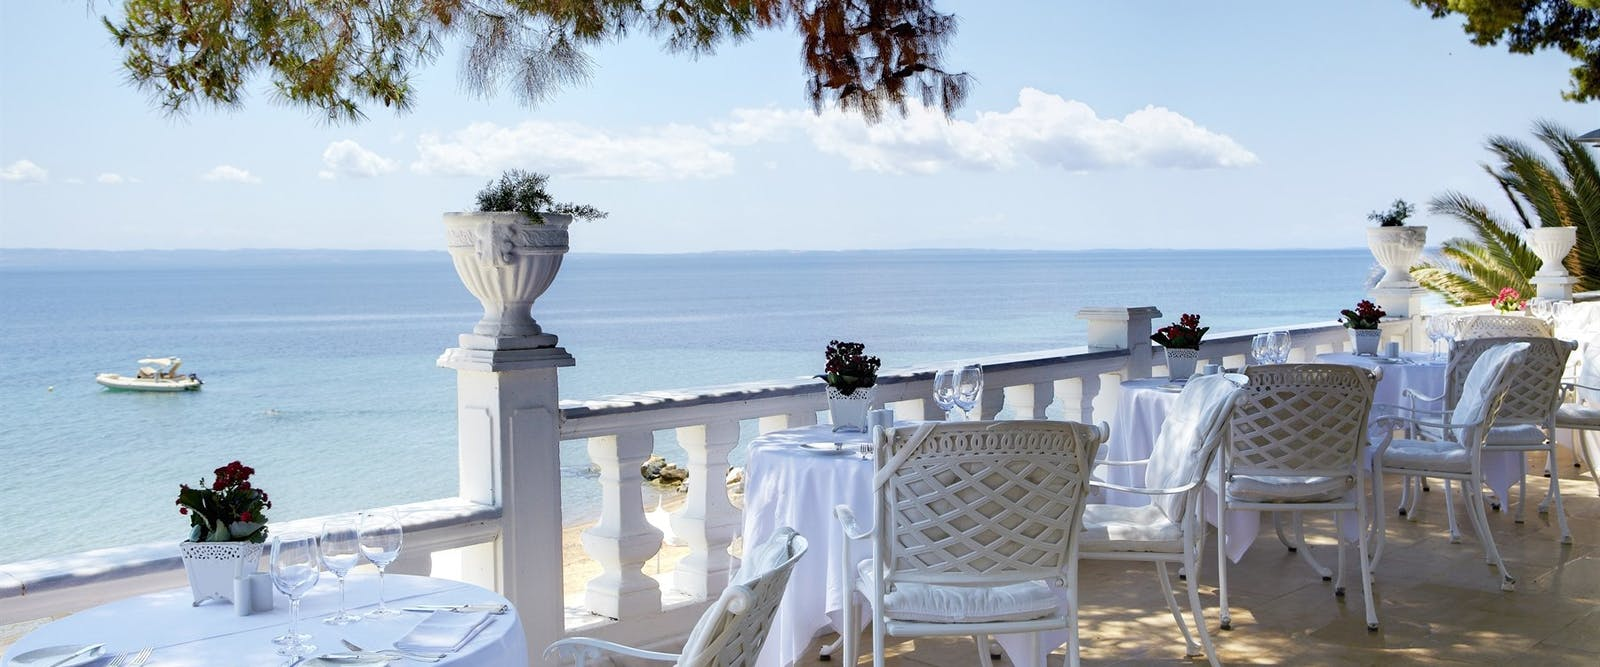 Restaurant Terrace at Danai Beach Resort & Villas, Halkidiki, Greece